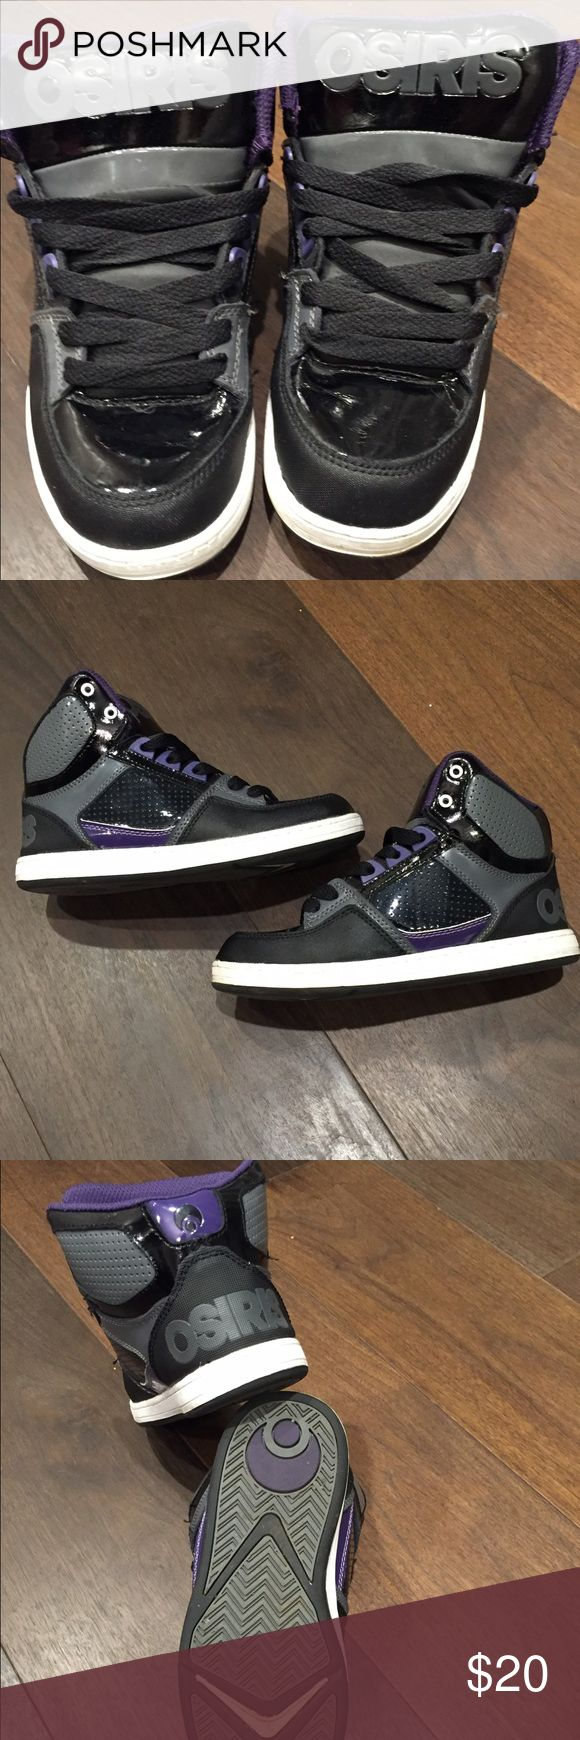 Shoes Barely used black and purple Osiris high top shoes Osiris Shoes Sneakers